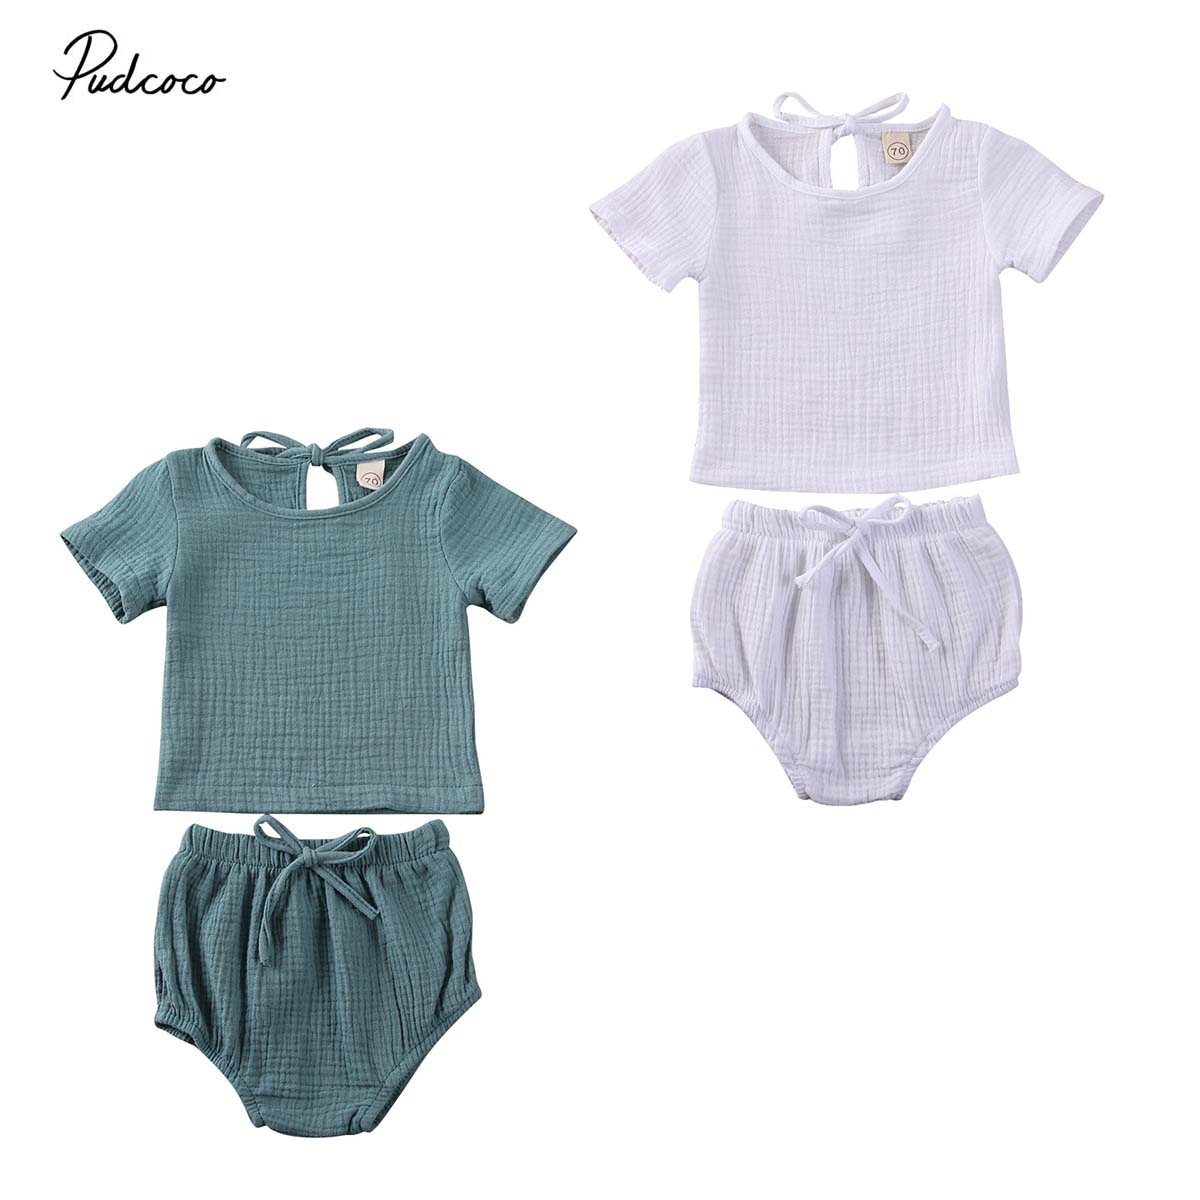 0-24Months Infant Baby Boy Girl Unisex Clothes Cotton&Linen T-Shirt Tops+Shorts 2pcs Set Summer Casual Outfit